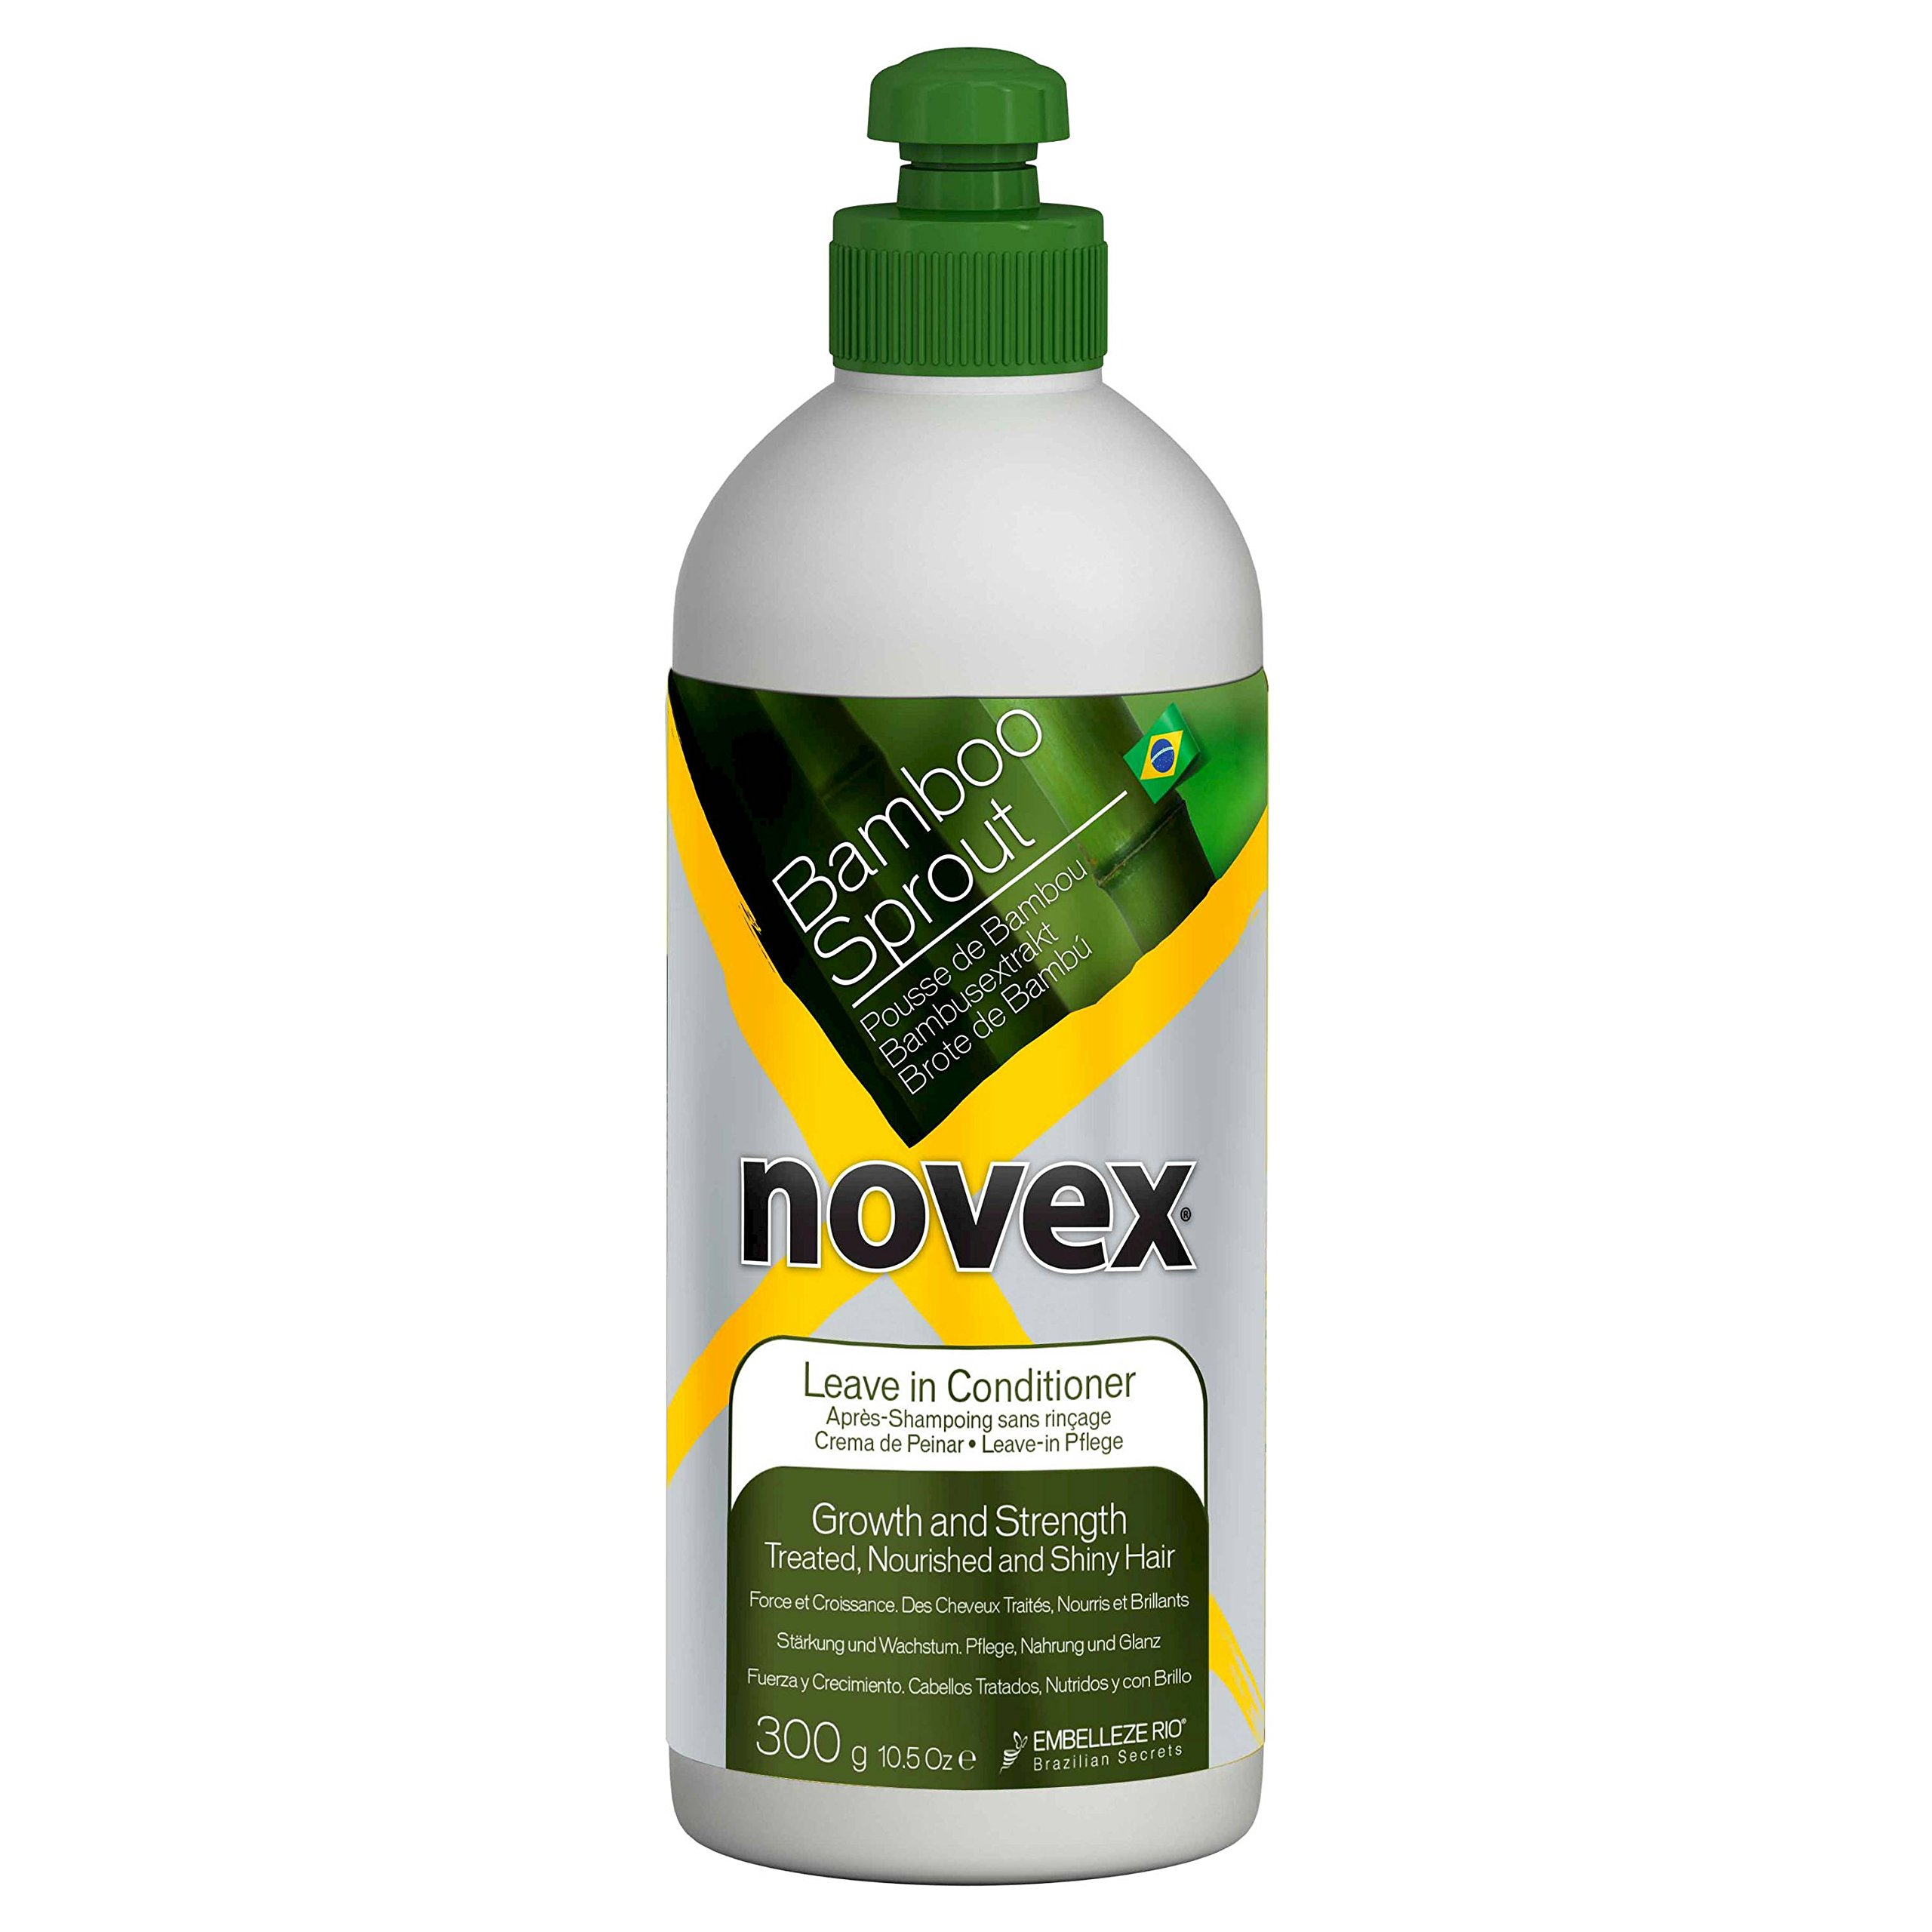 Novex Bamboo Leave-in Conditioner 300g 10.5oz